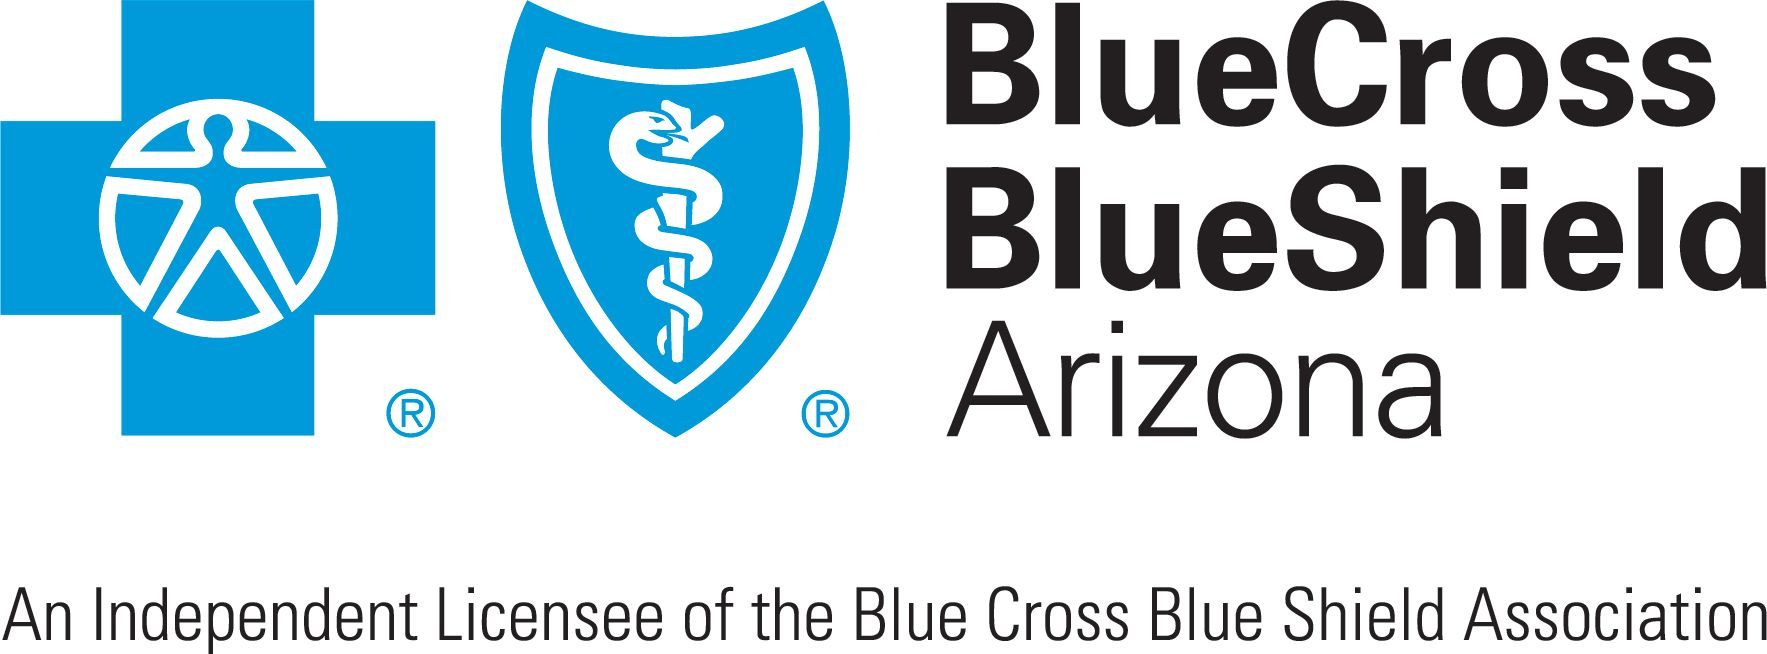 Lunch Sponsor - Blue Cross Blue Shield of Arizona